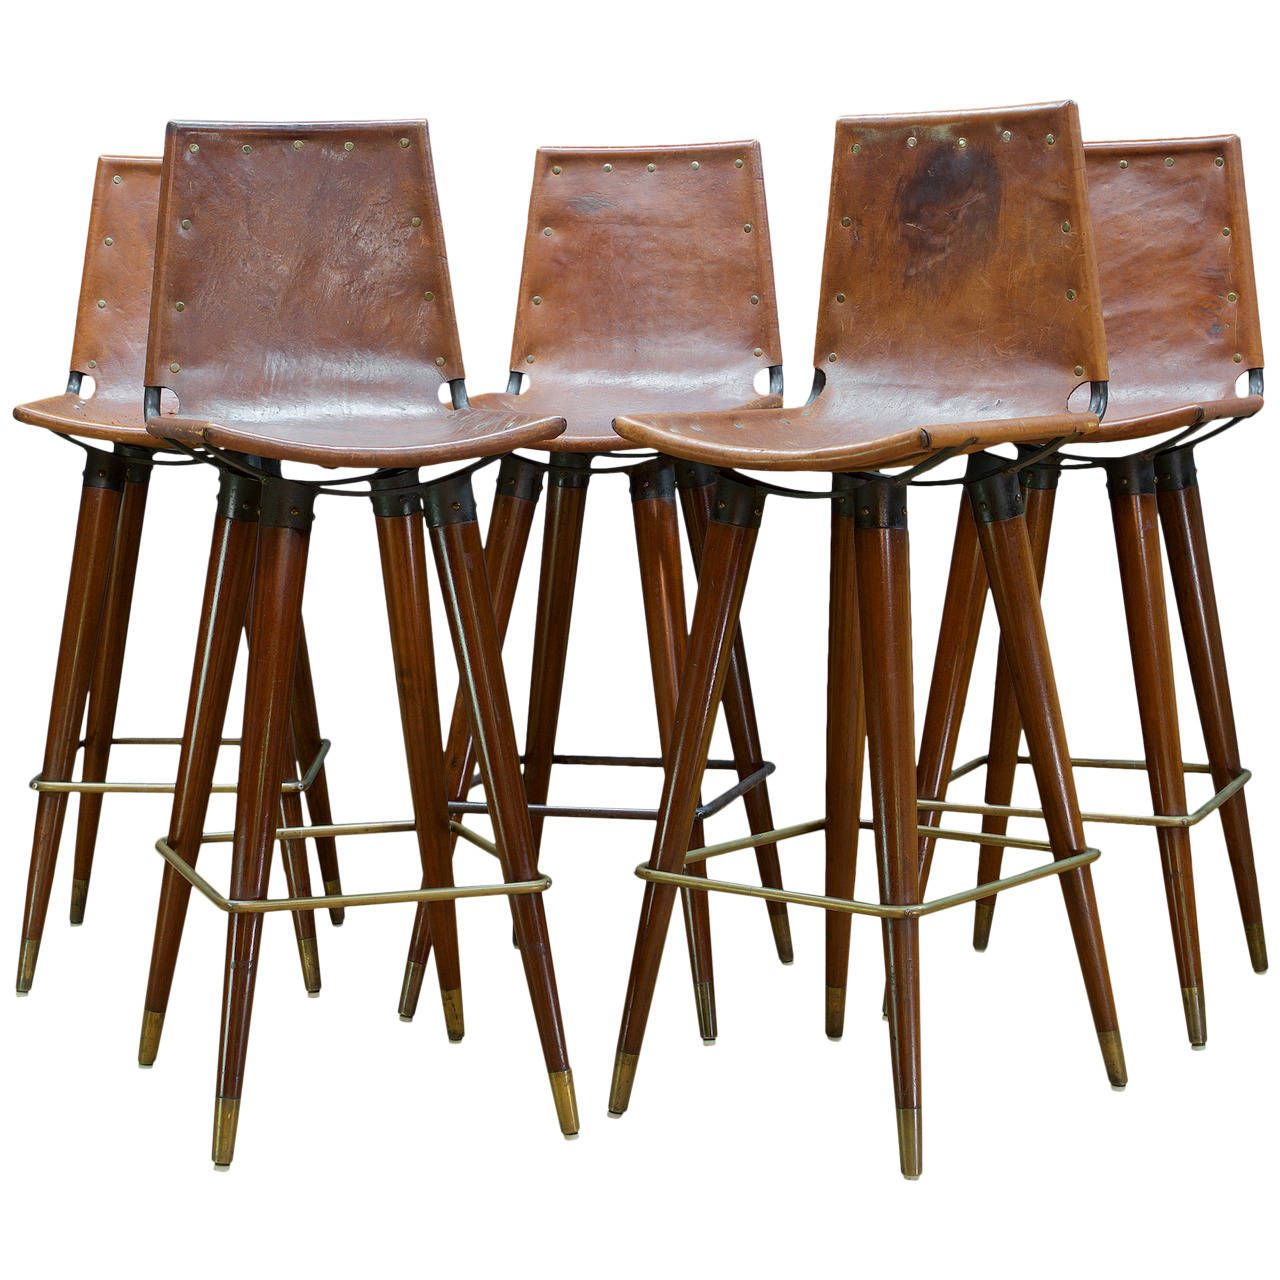 1960s Midcentury Leather Sling Iron Bar Stools From A Unique